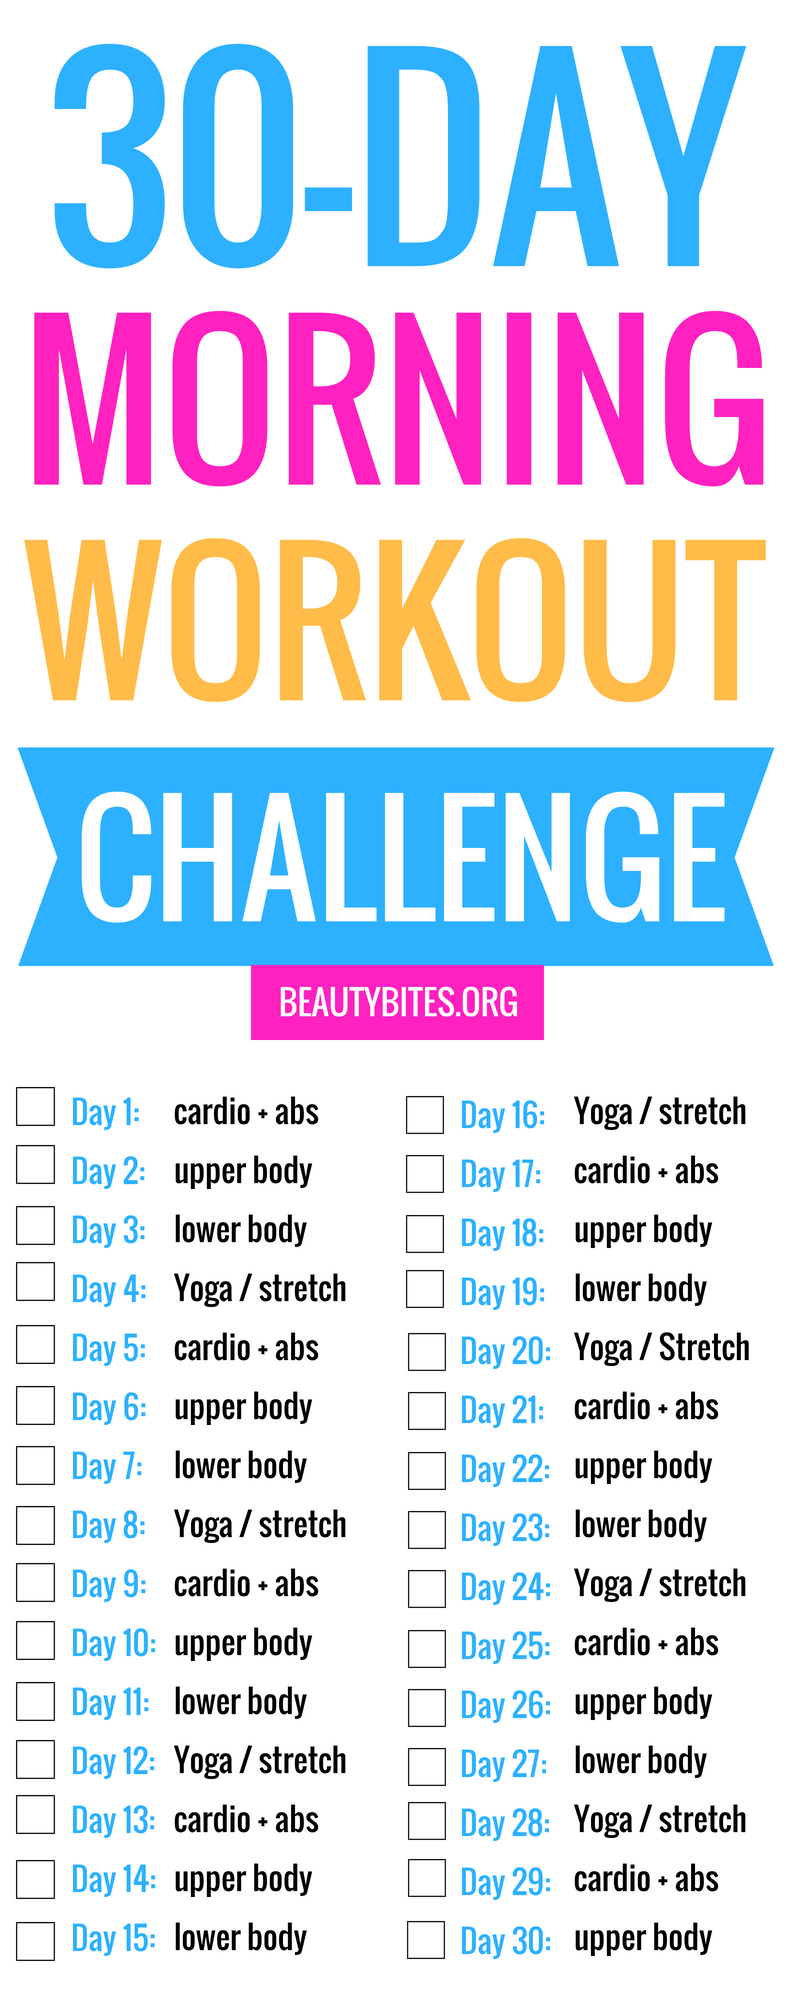 30 Day Morning Workout Challenge You Can Exercise At Home Or At The Gym